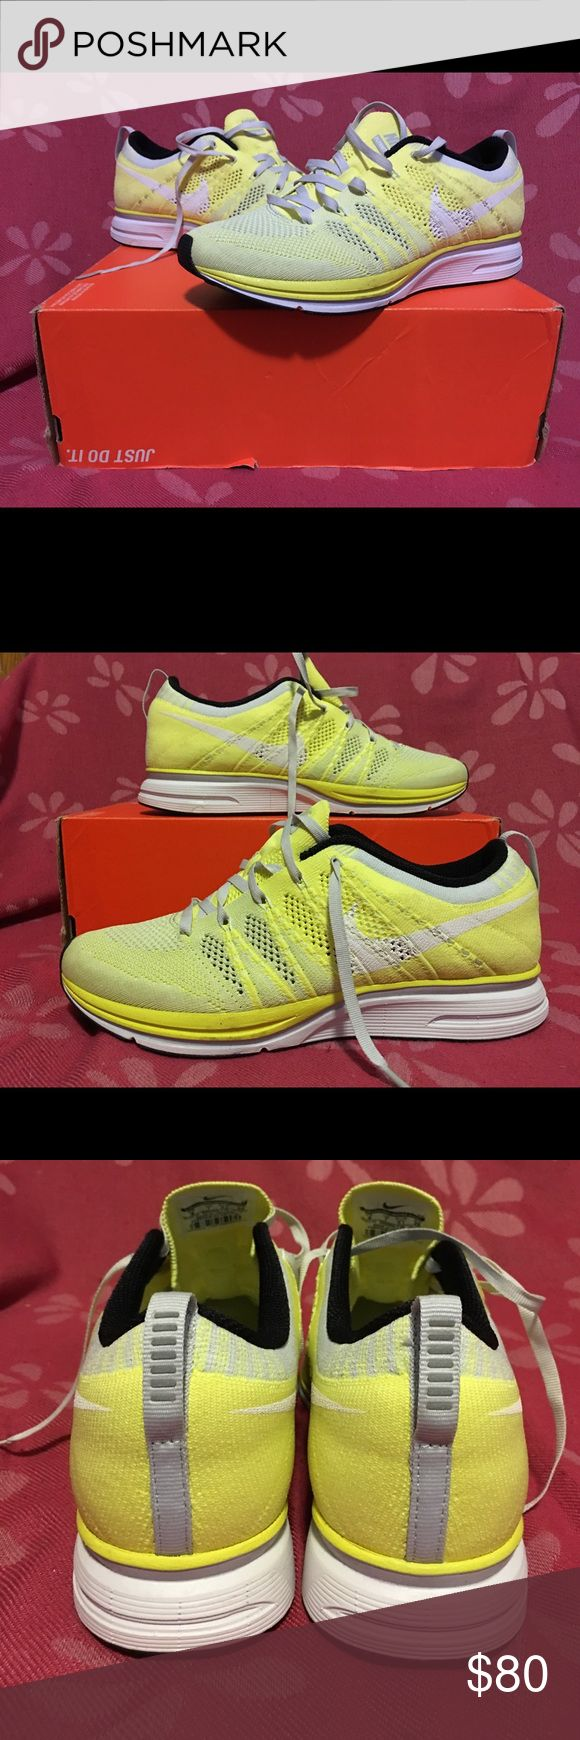 Nike Flyknit Trainer+ Electric Yellow Men's size 8.5 Women's size 10, Brand new, never been worn. Comes with original white laces and partial box (top flap over ripped off). Nike Shoes Sneakers